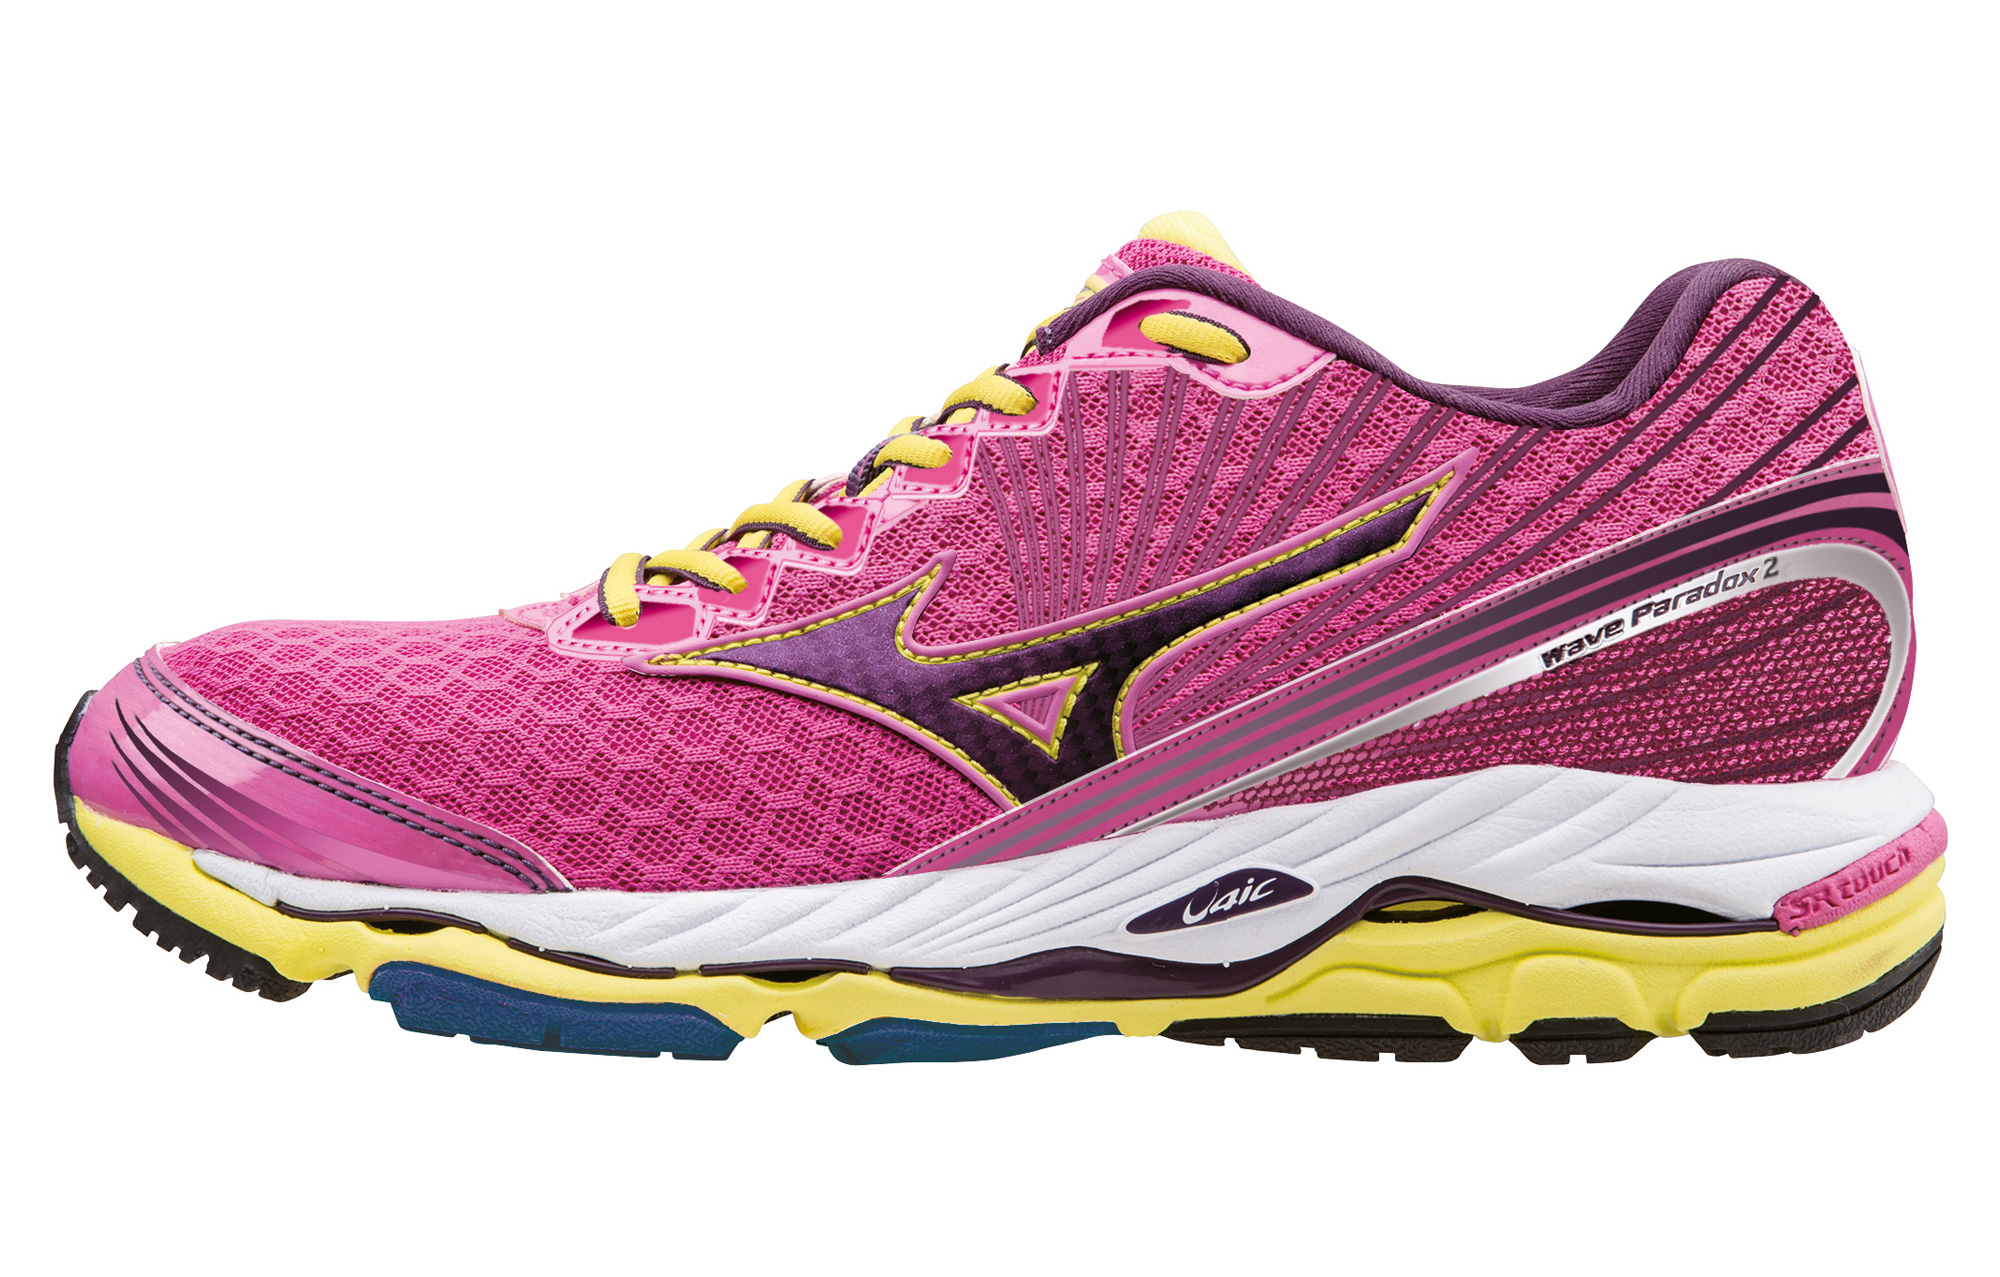 f81f6bd2f54f MIZUNO Shoes WAVE PARADOX 2 Pink Yellow Women | Alltricks.com